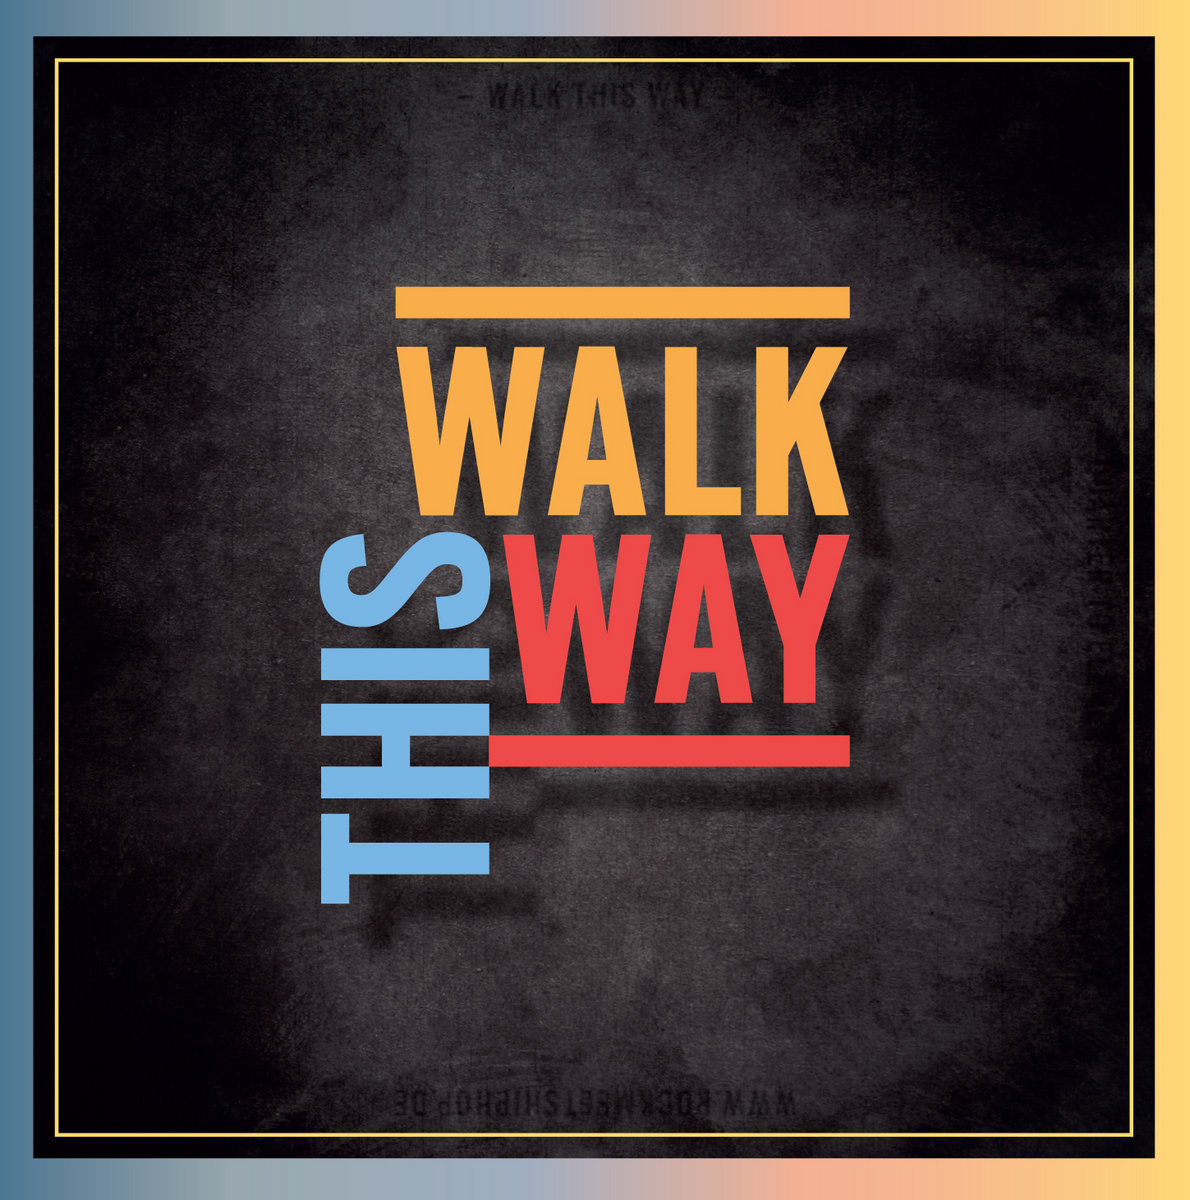 Walk this way images